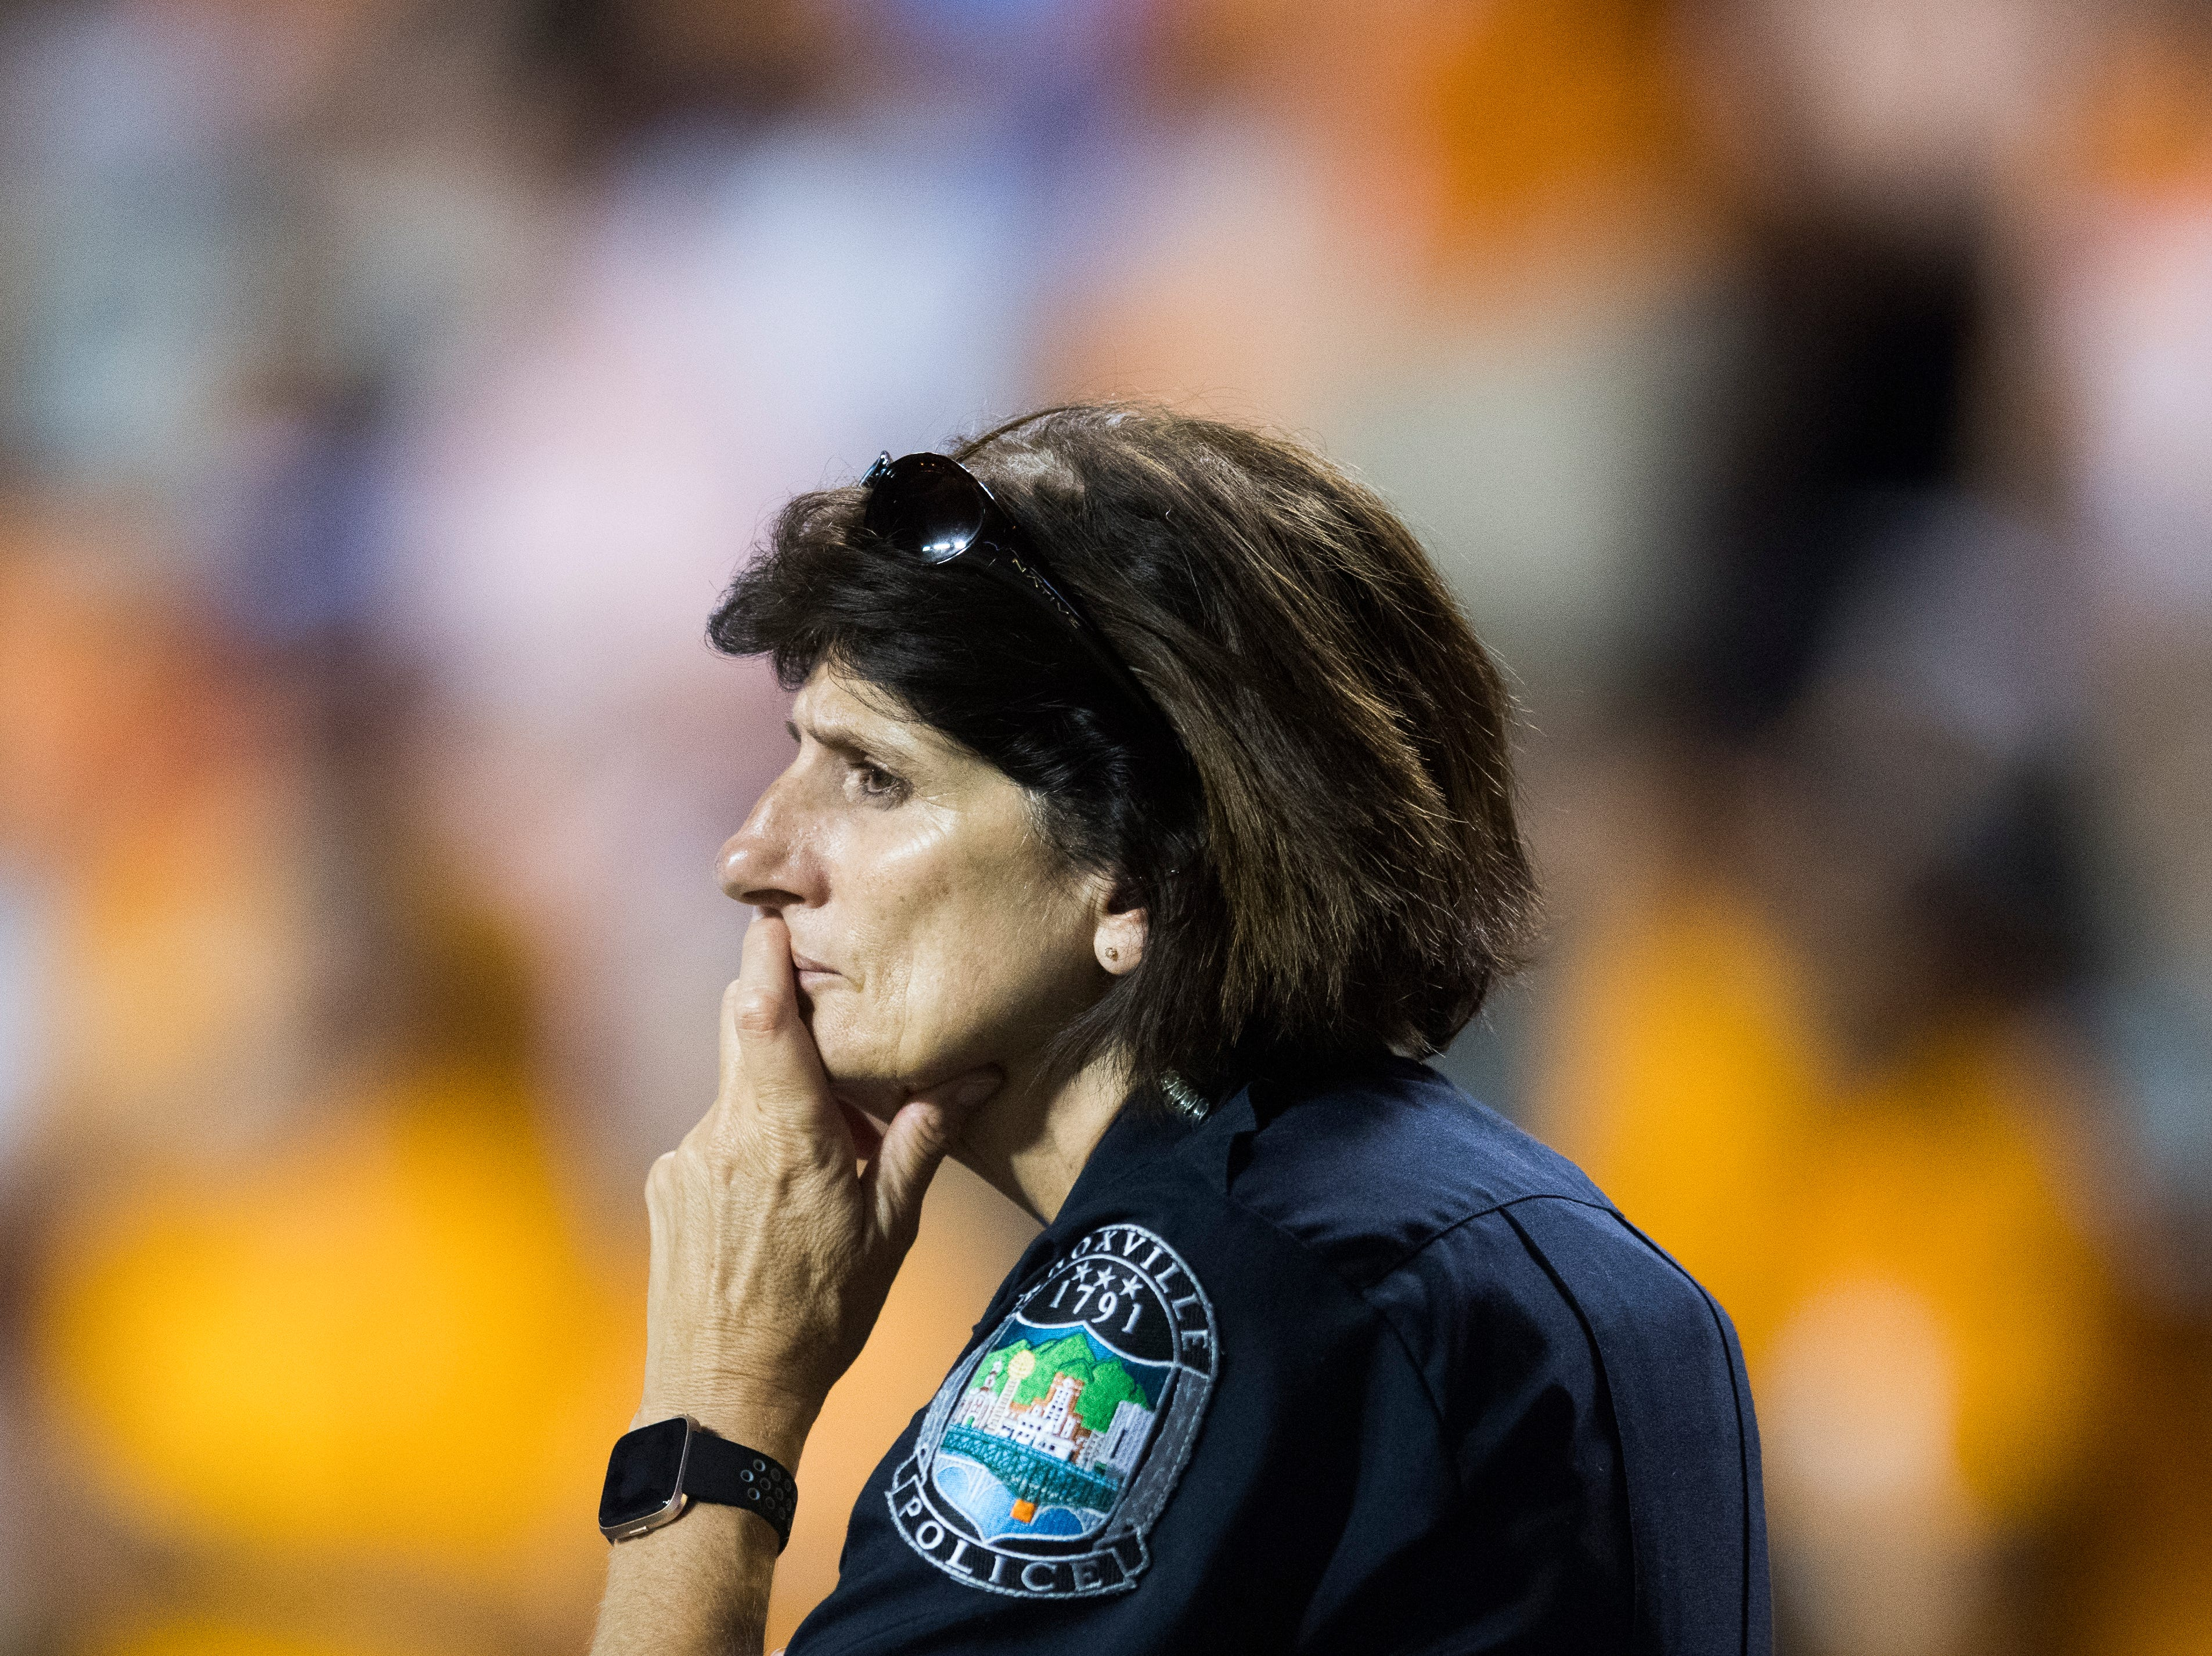 Knoxville Chief of Police Eve Thomas stands on the sidelines during a game between Tennessee and Florida at Neyland Stadium in Knoxville, Tennessee on Saturday, September 22, 2018.